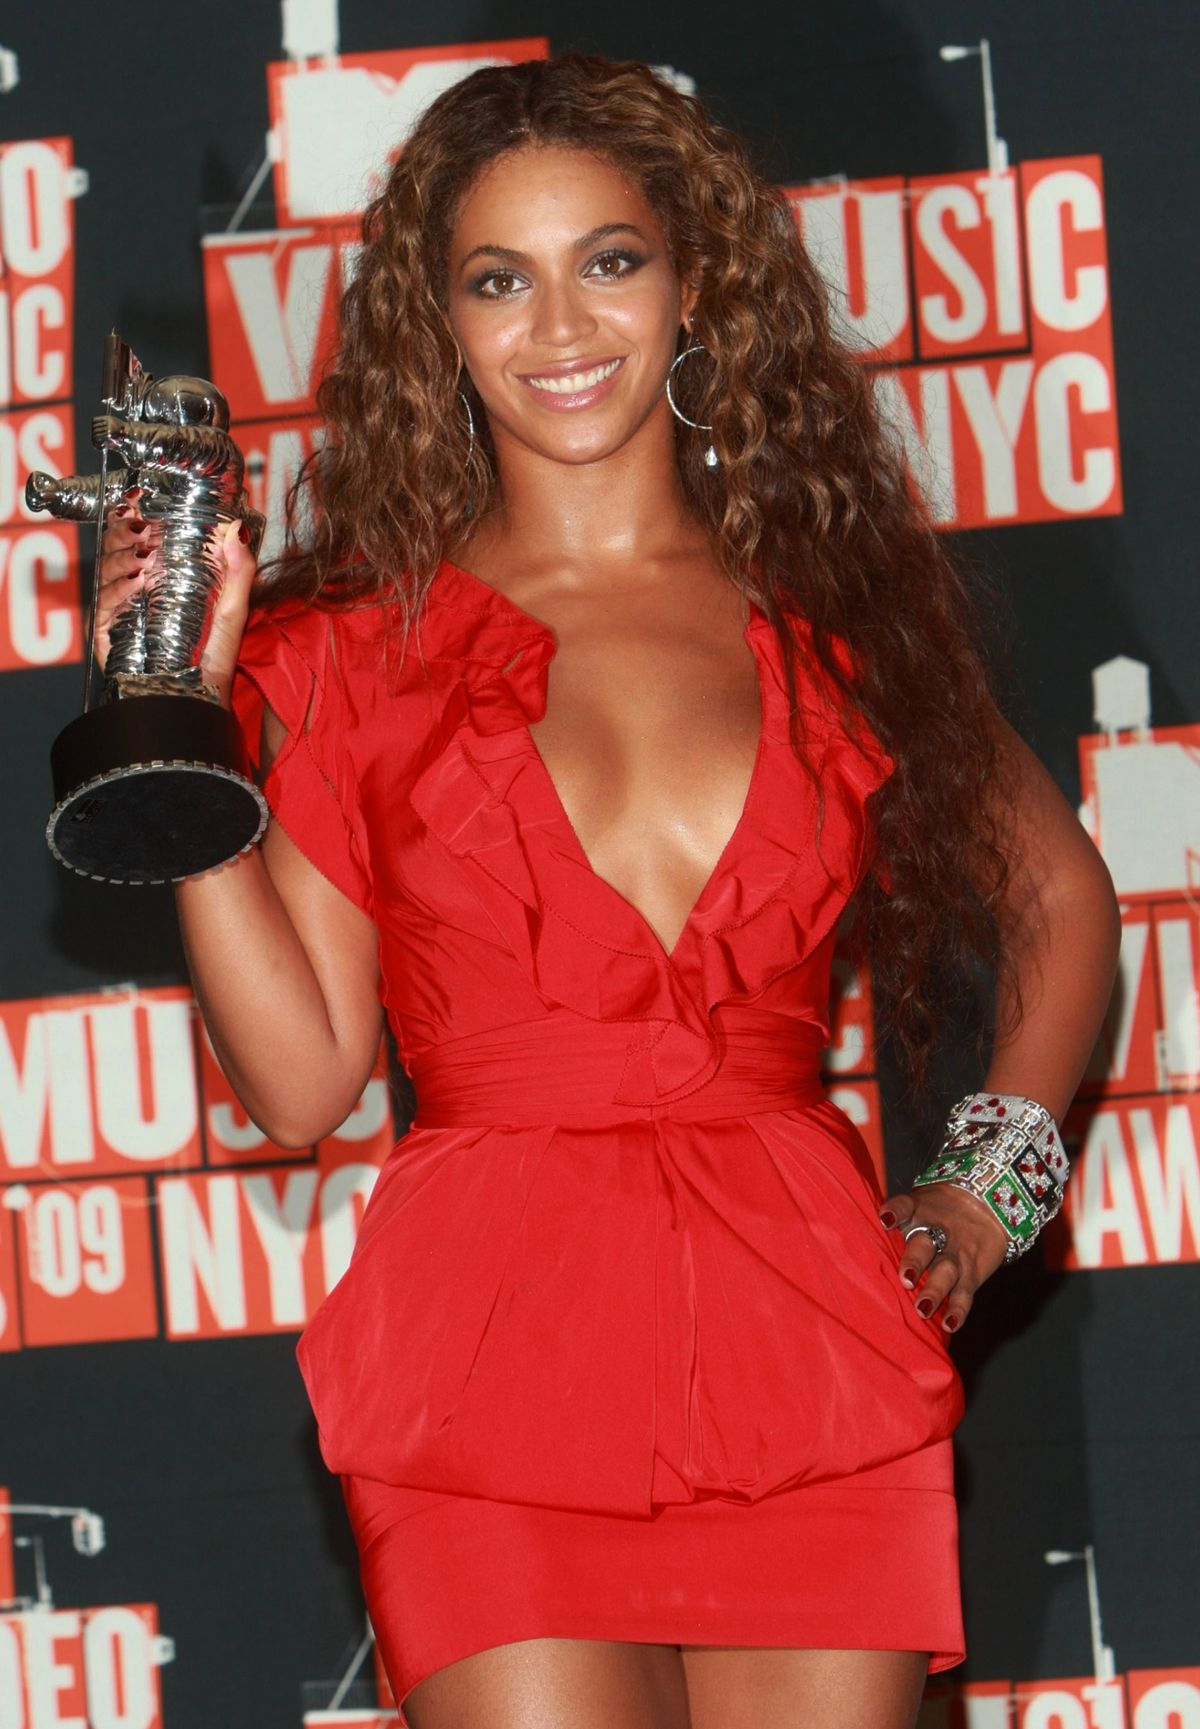 NEW YORK - SEPTEMBER 13: Beyonce poses in the press room at the 2009 MTV Video Music Awards at Radio City Music Hall on September 13, 2009 in New York City. (Photo by Stephen Lovekin/FilmMagic)